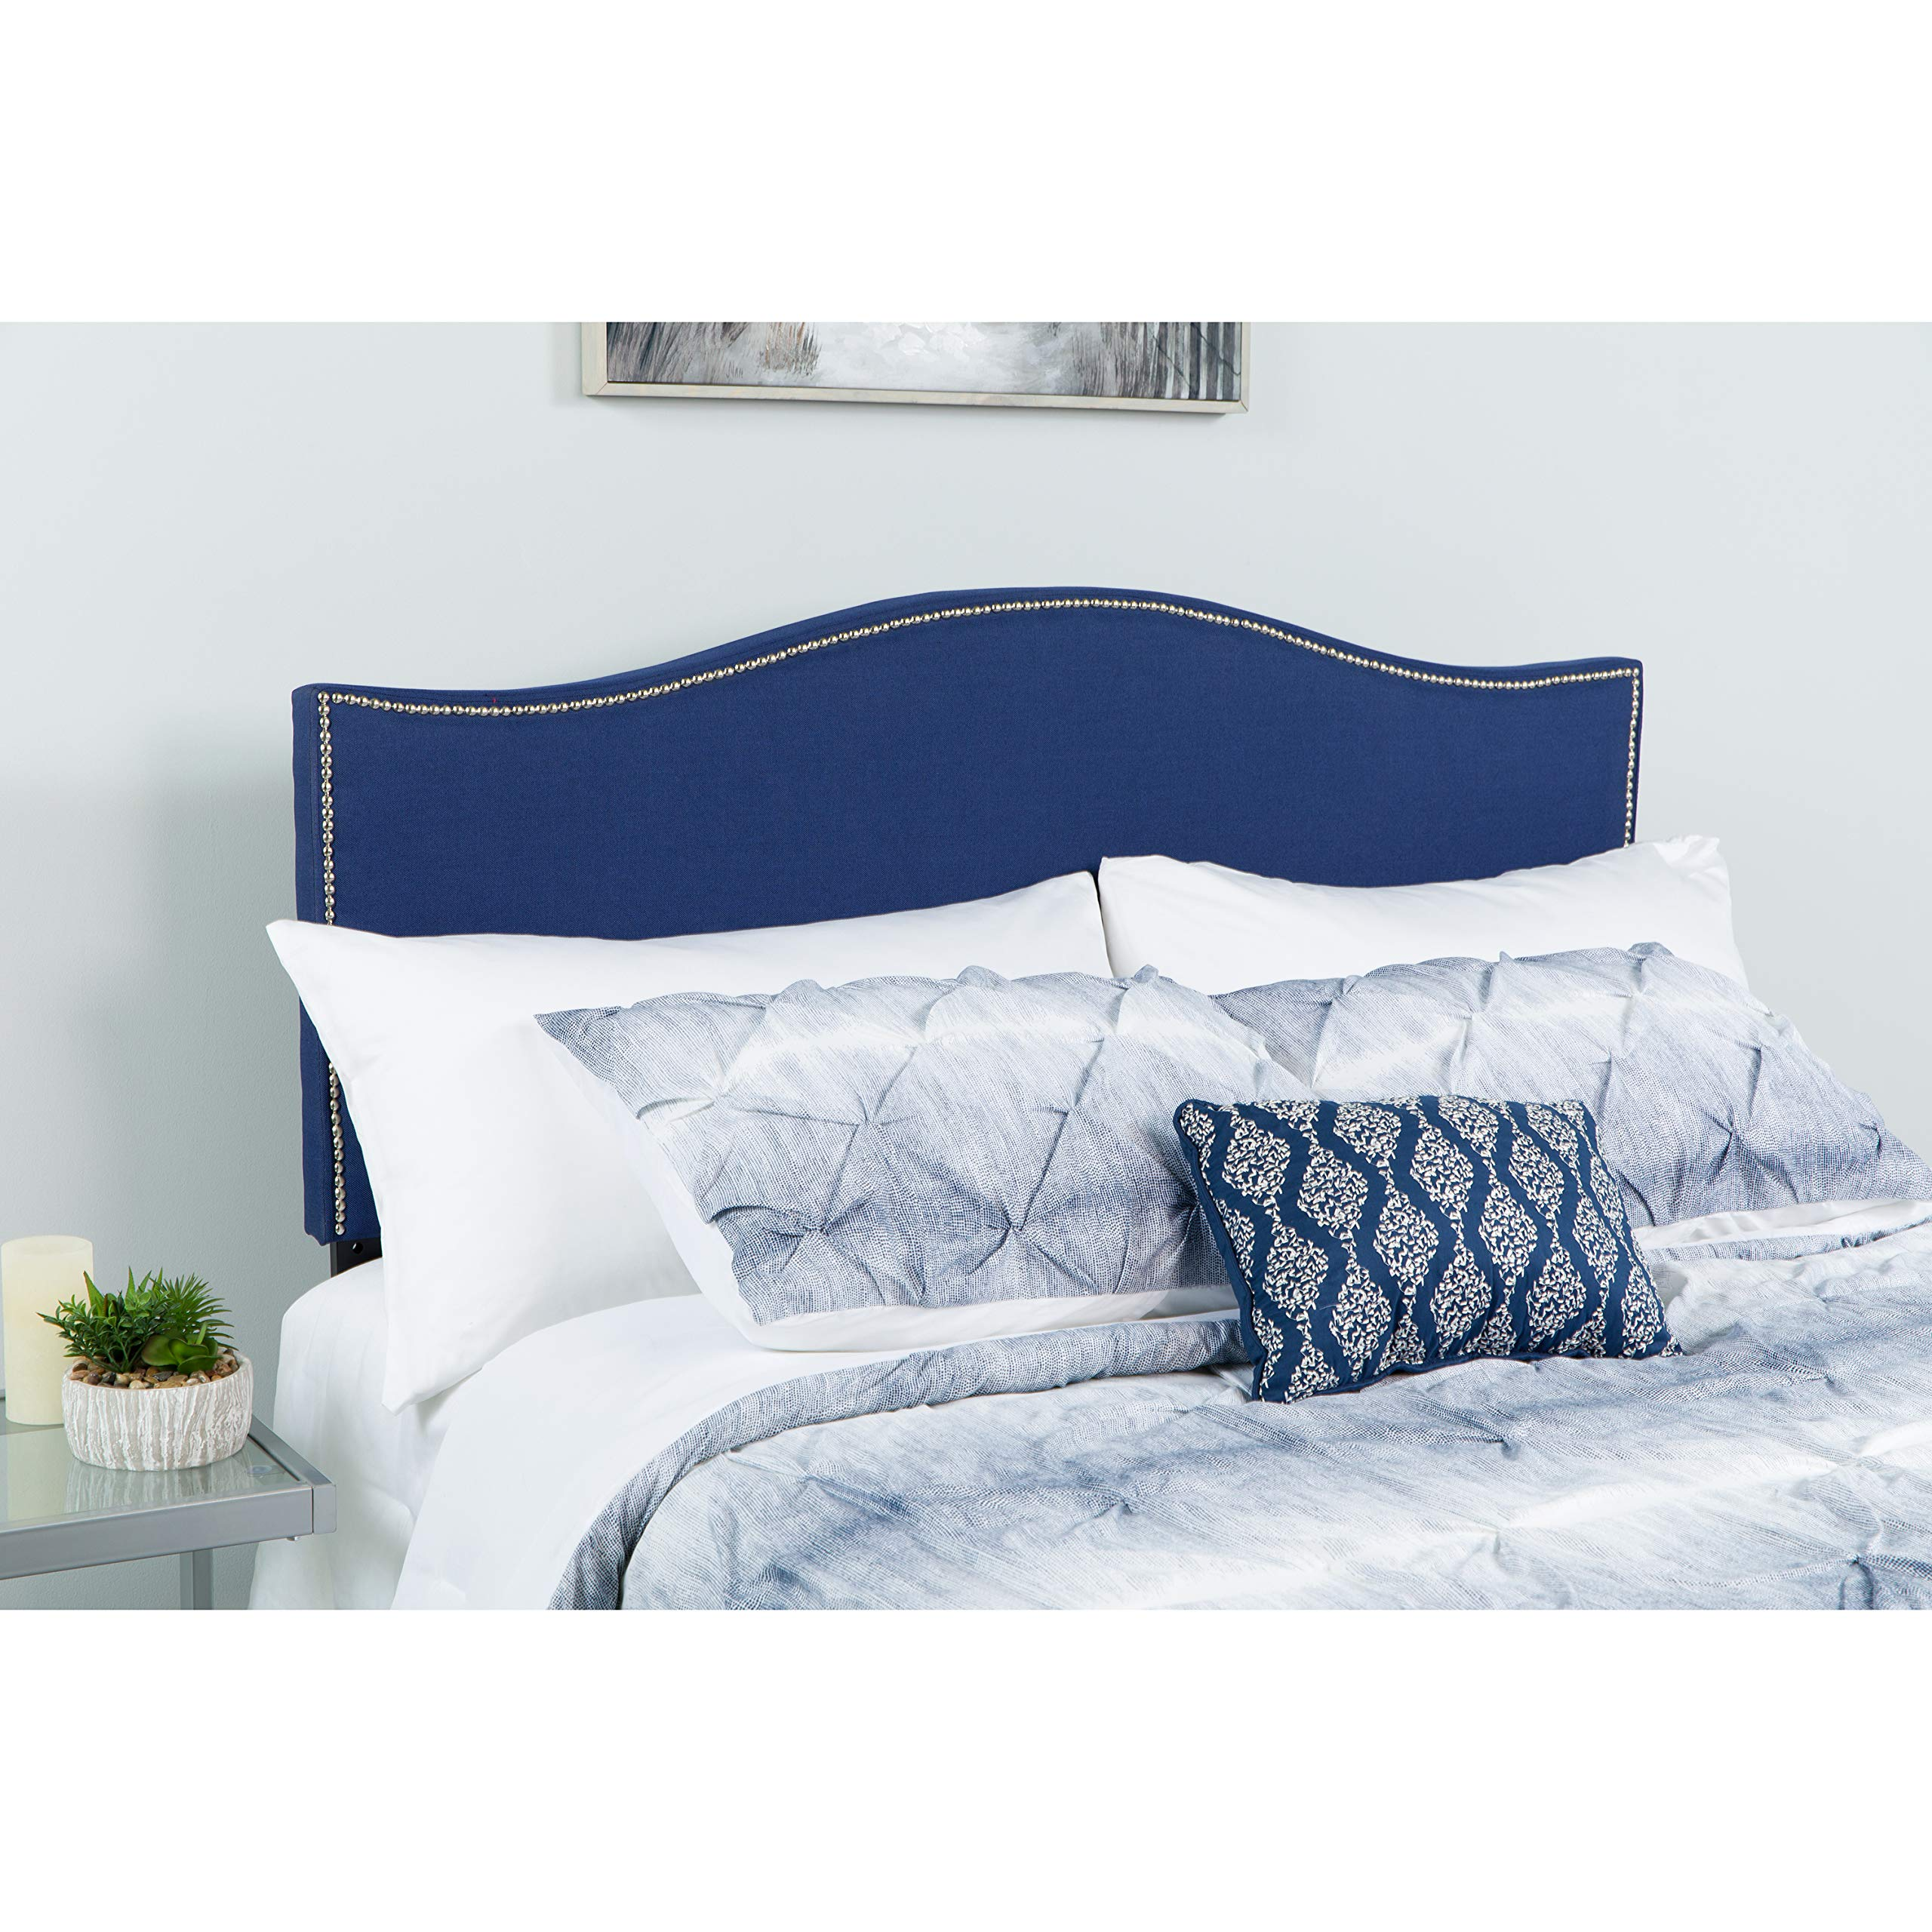 Flash Furniture Lexington Upholstered Twin Size Headboard with Accent Nail Trim in Navy Fabric - HG-HB1707-T-N-GG by Flash Furniture